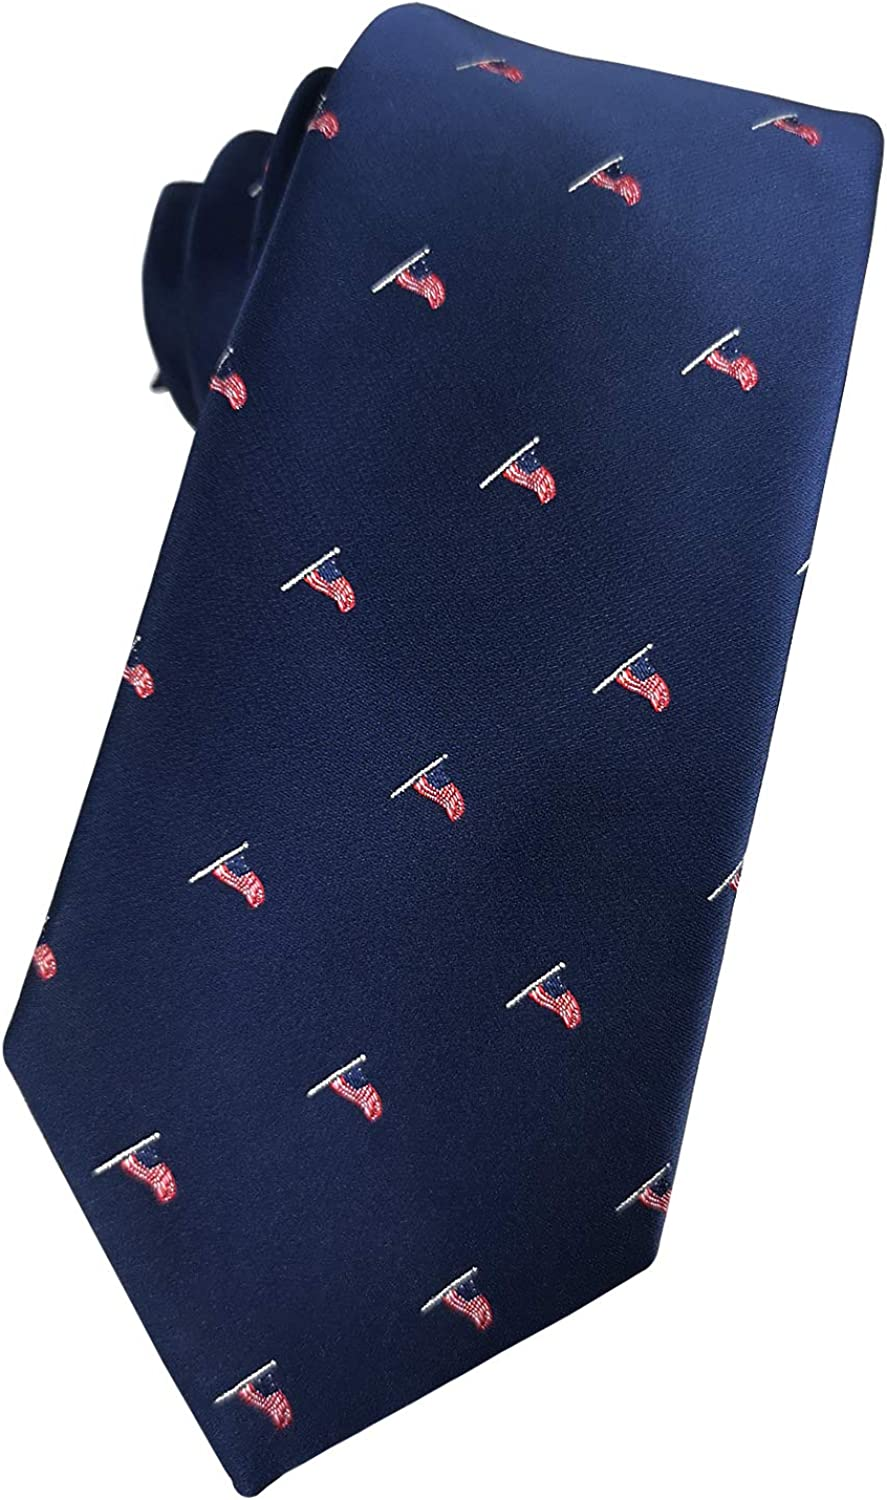 KOOELLE Mens Limited time sale Patriotic Necktie American US Flag St Limited Special Price Stars Eagle